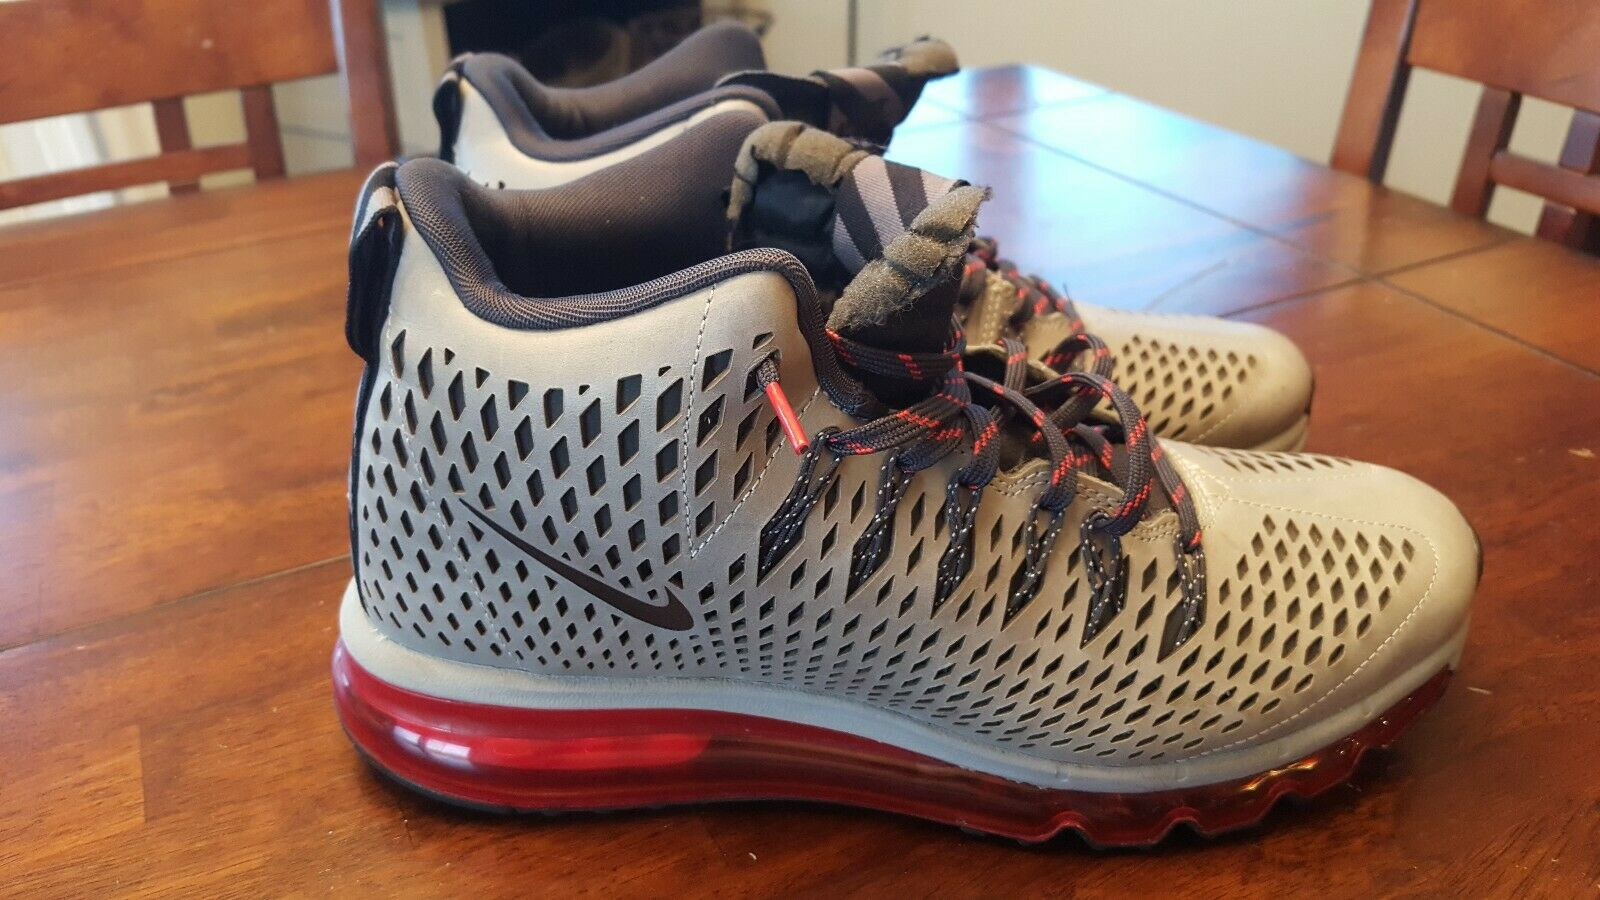 Nike Air Max Graviton Red Athletic shoes Silver Sneakers 616045-006 Mens Sz 9.5